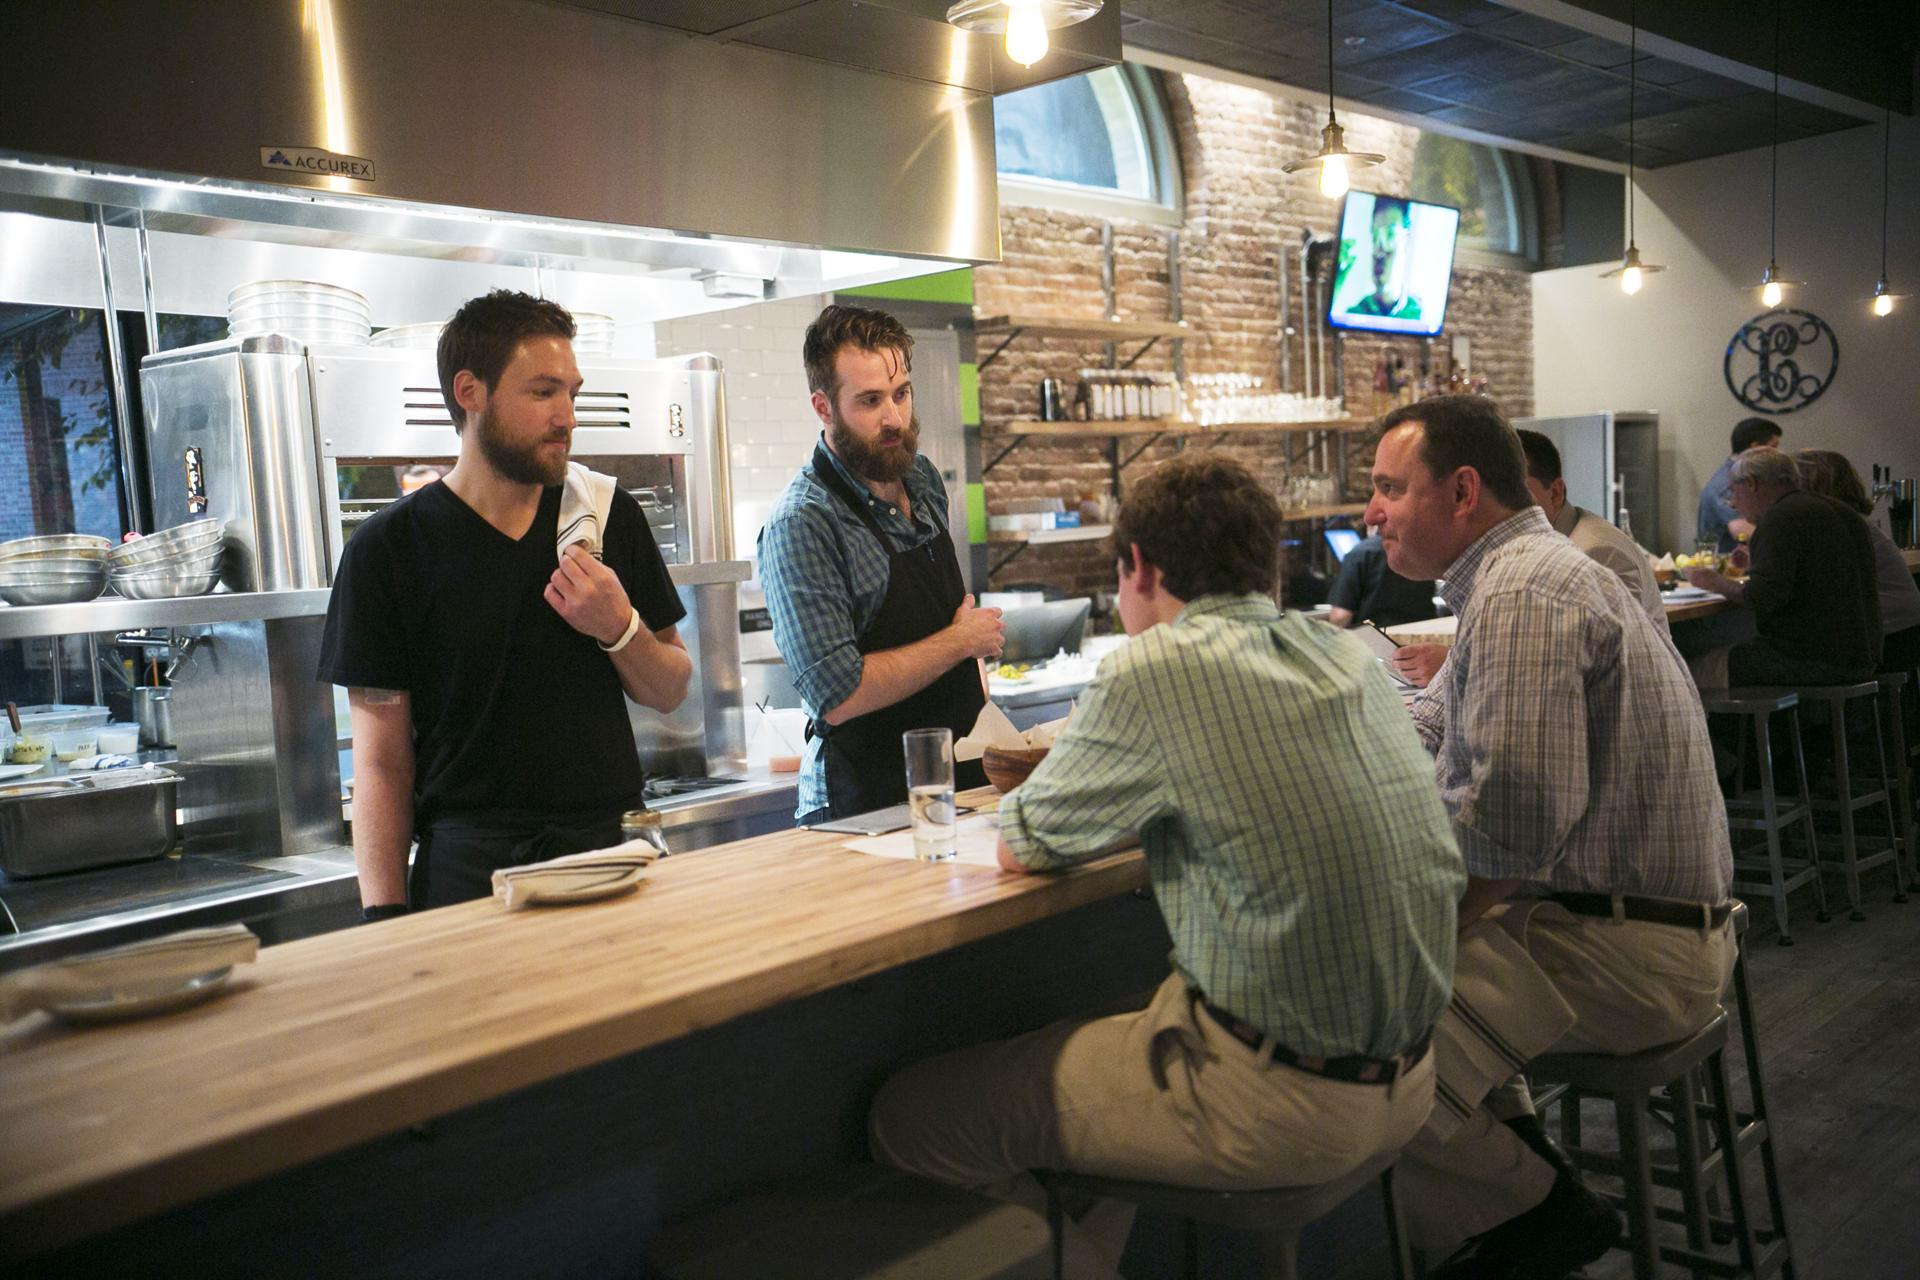 Michael Ryan Buckley (right) and Jacob White (left) co-owner and chef talk to the patrons at Comedor.